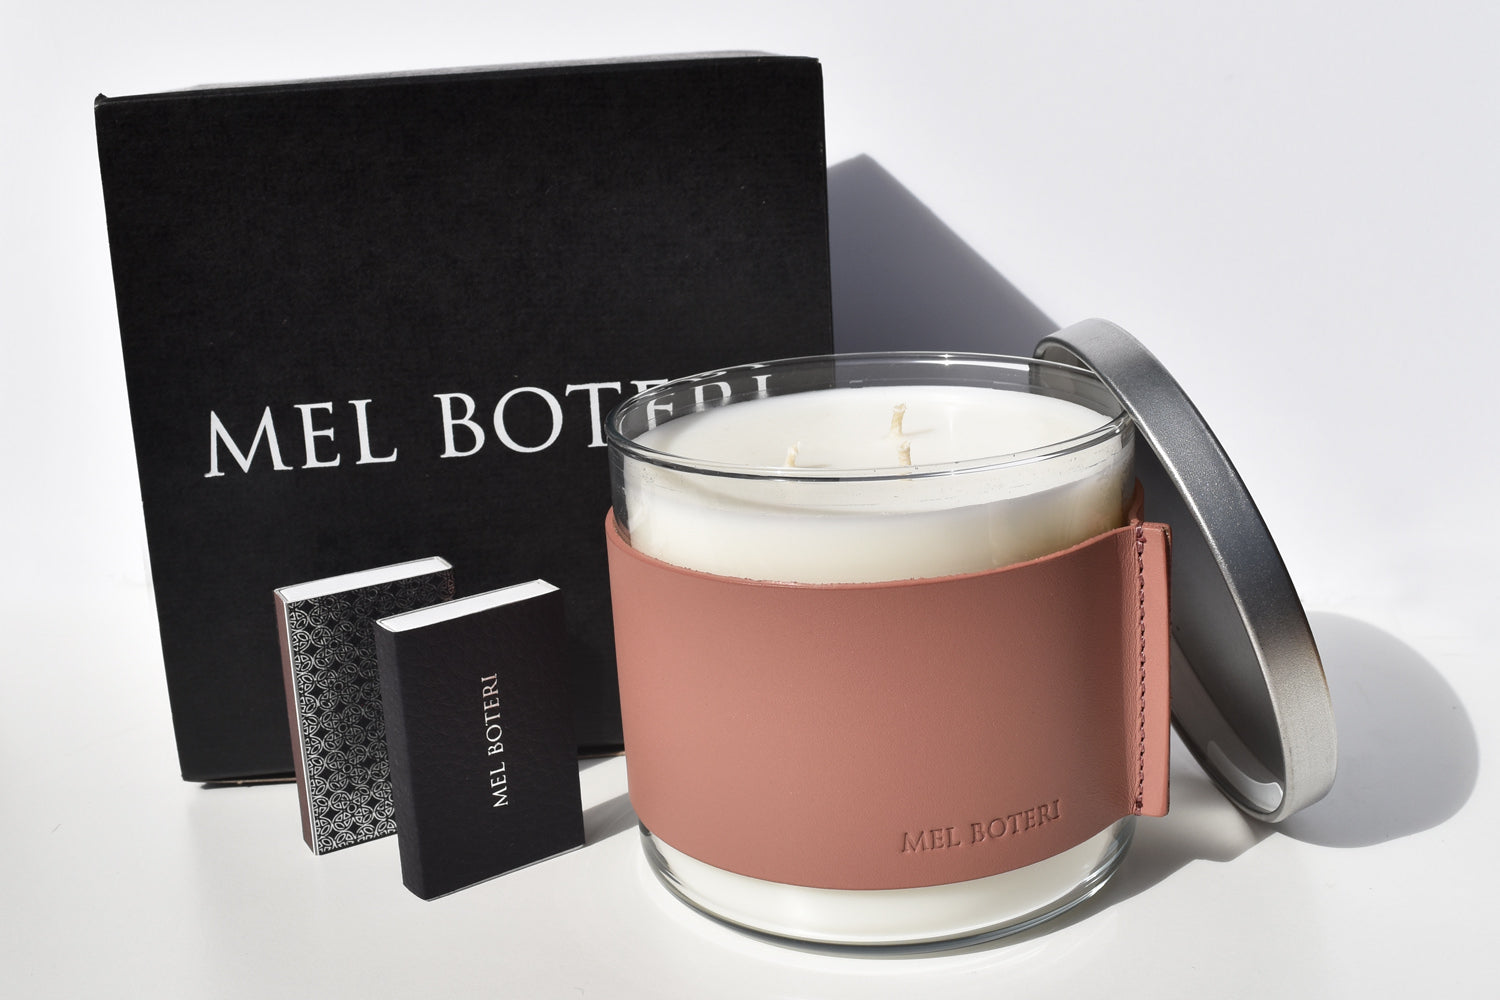 White Tea & Ginger Scented Candle | Mel Boteri Home Collection | Gift Set